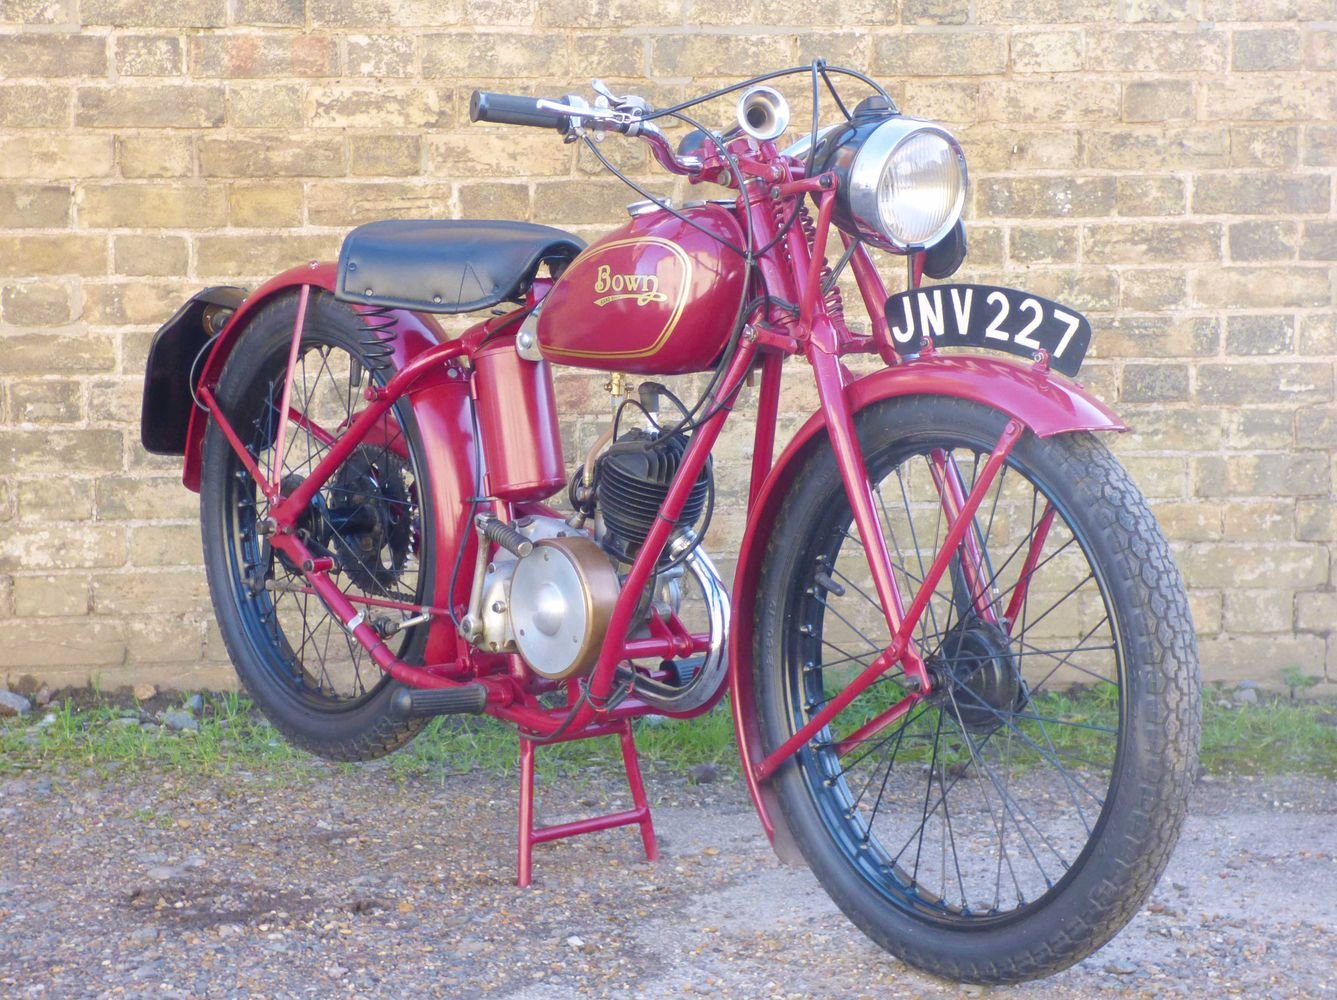 1953 Bown Standard 98cc For Sale (picture 6 of 6)